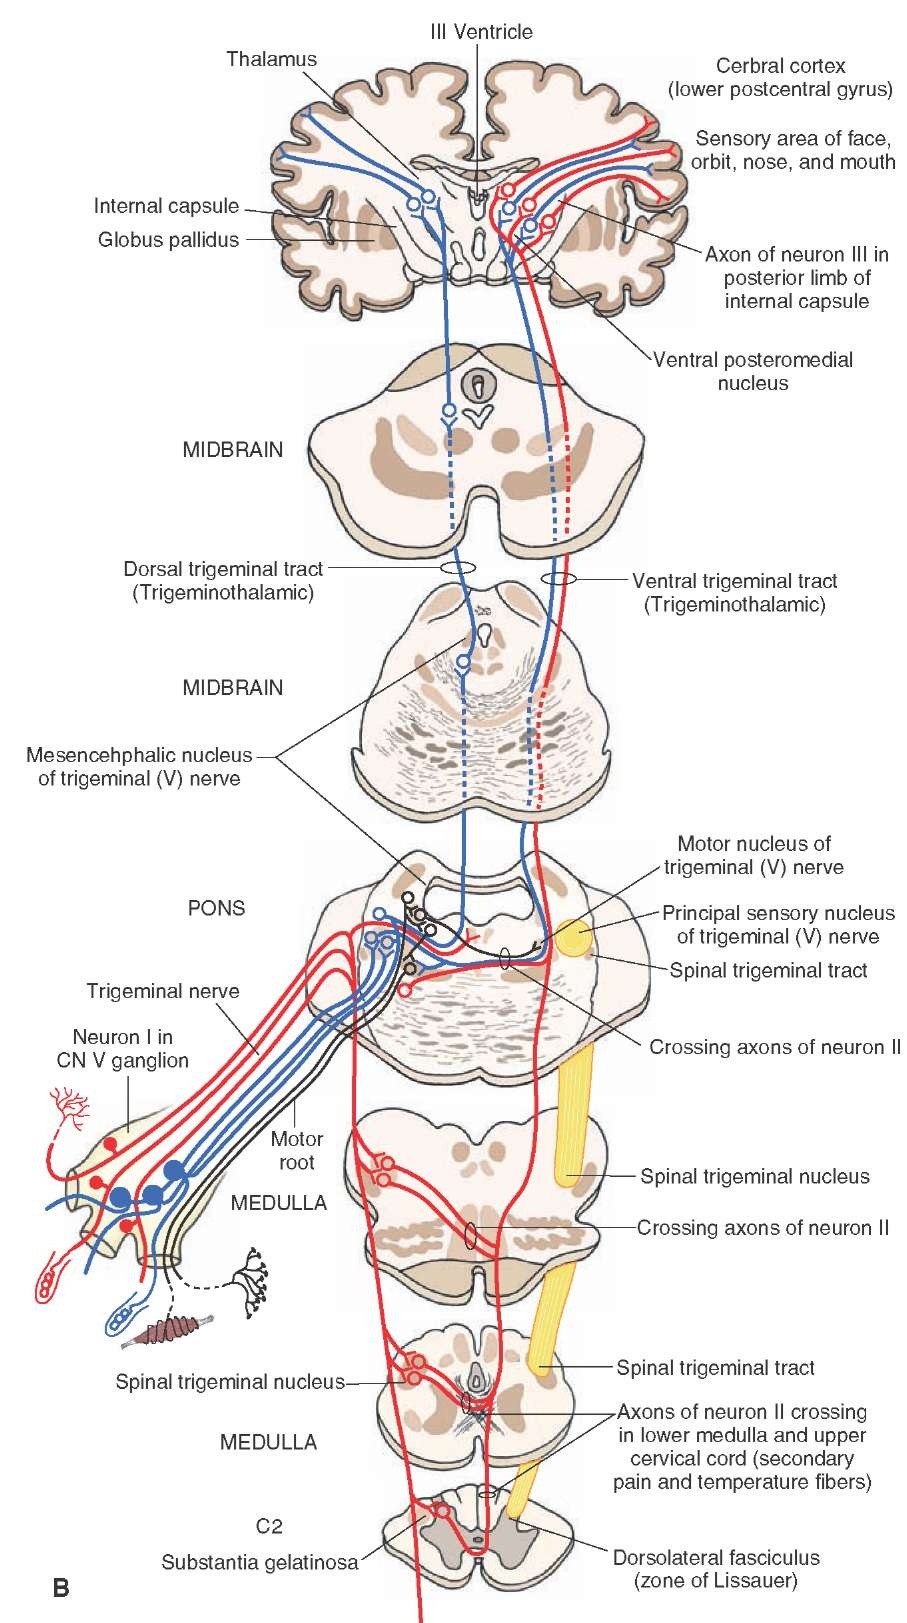 hight resolution of  b organization and distribution of the central trigeminal pathways from the periphery to the